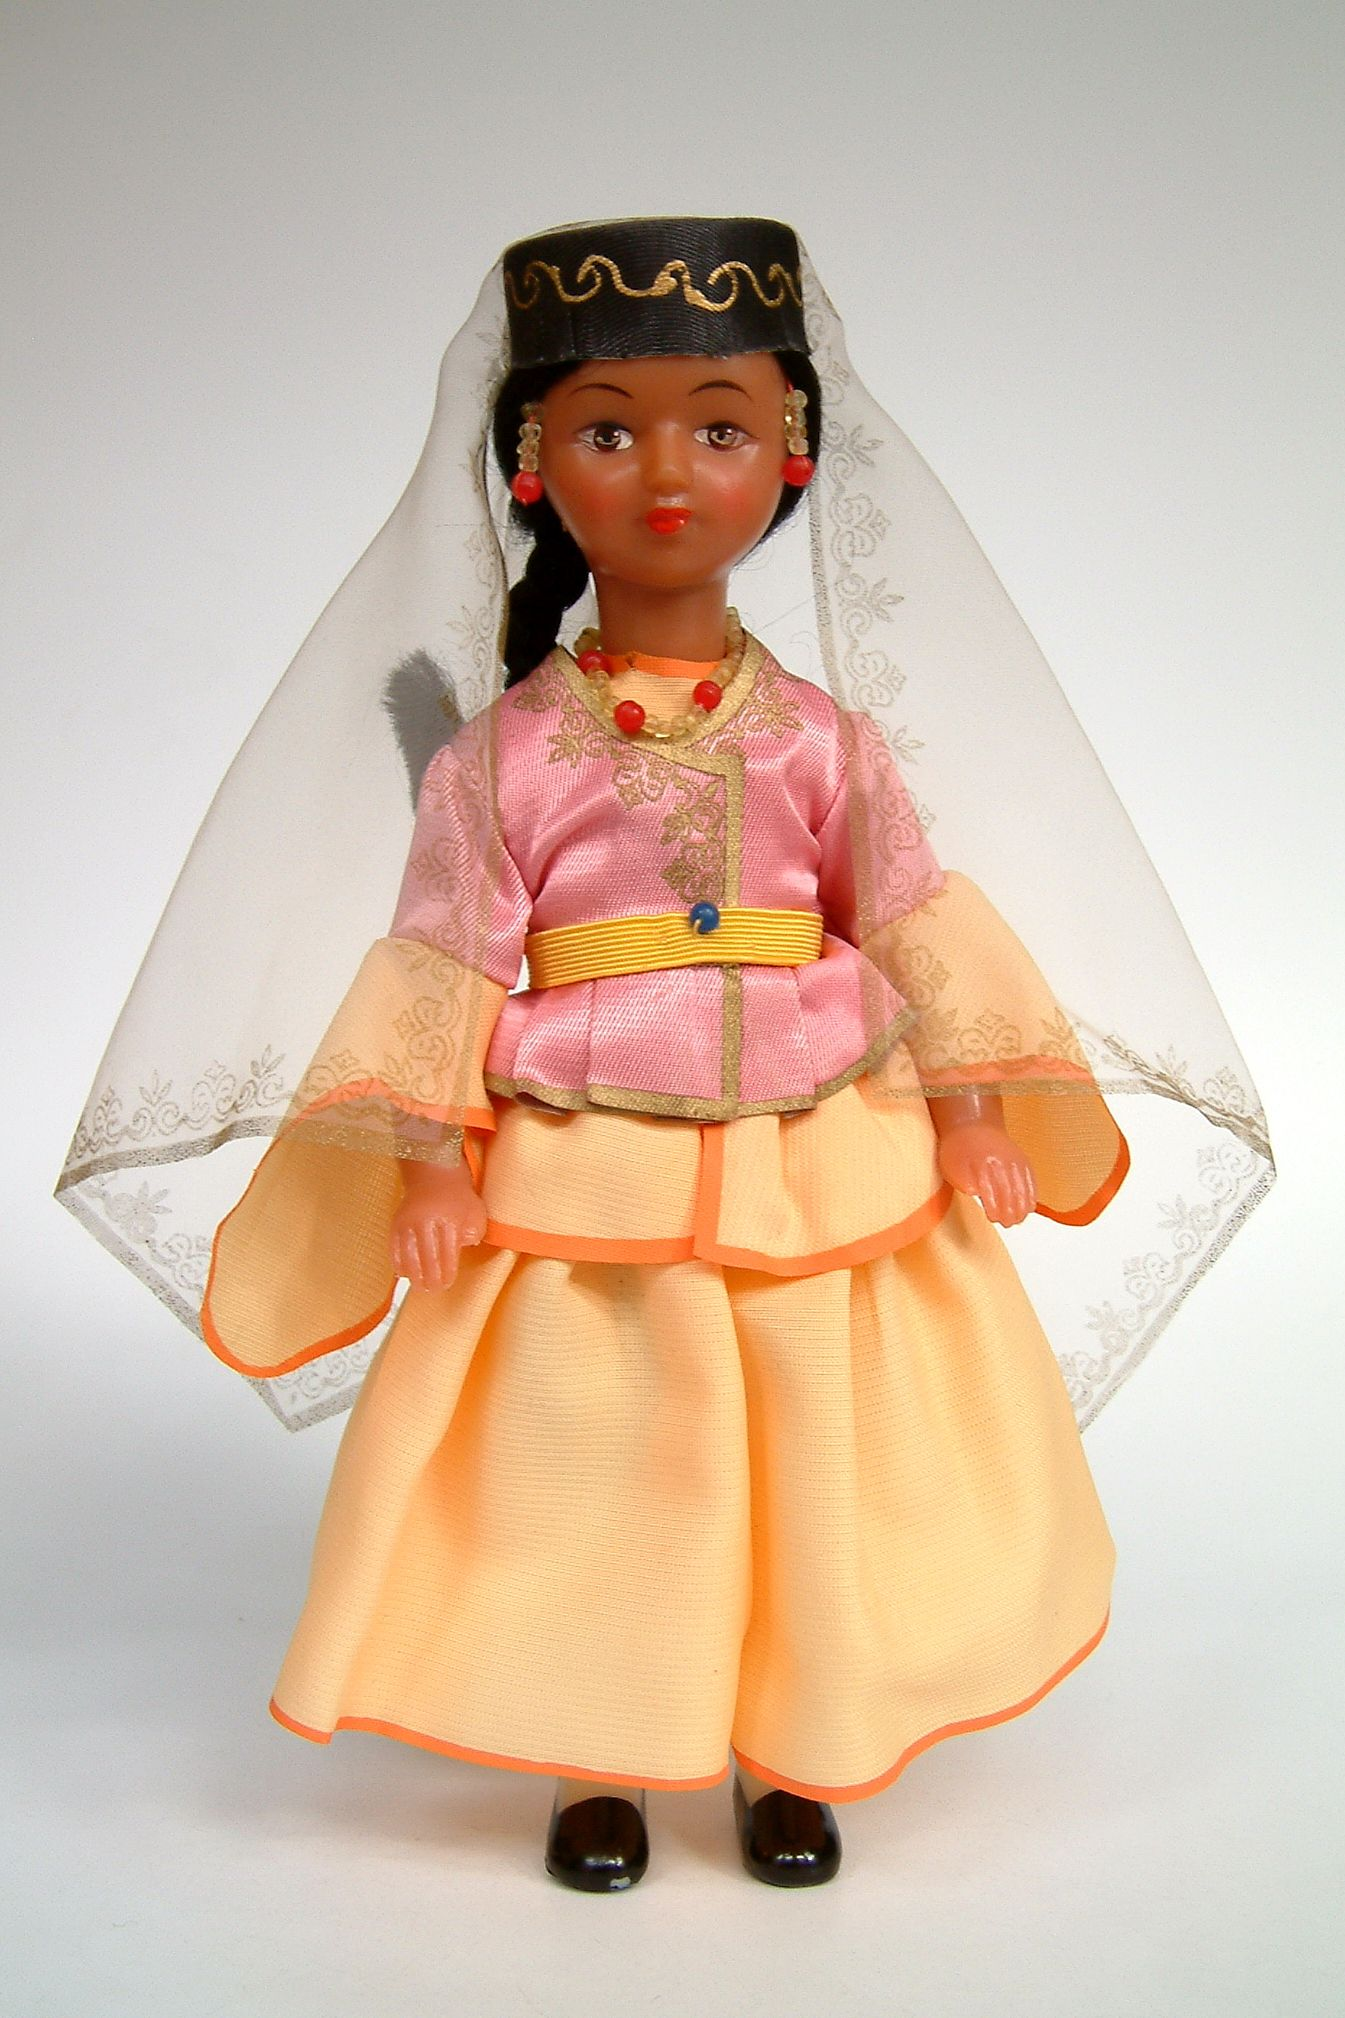 Azerbaijan   National costume doll made in USSR (Russia)